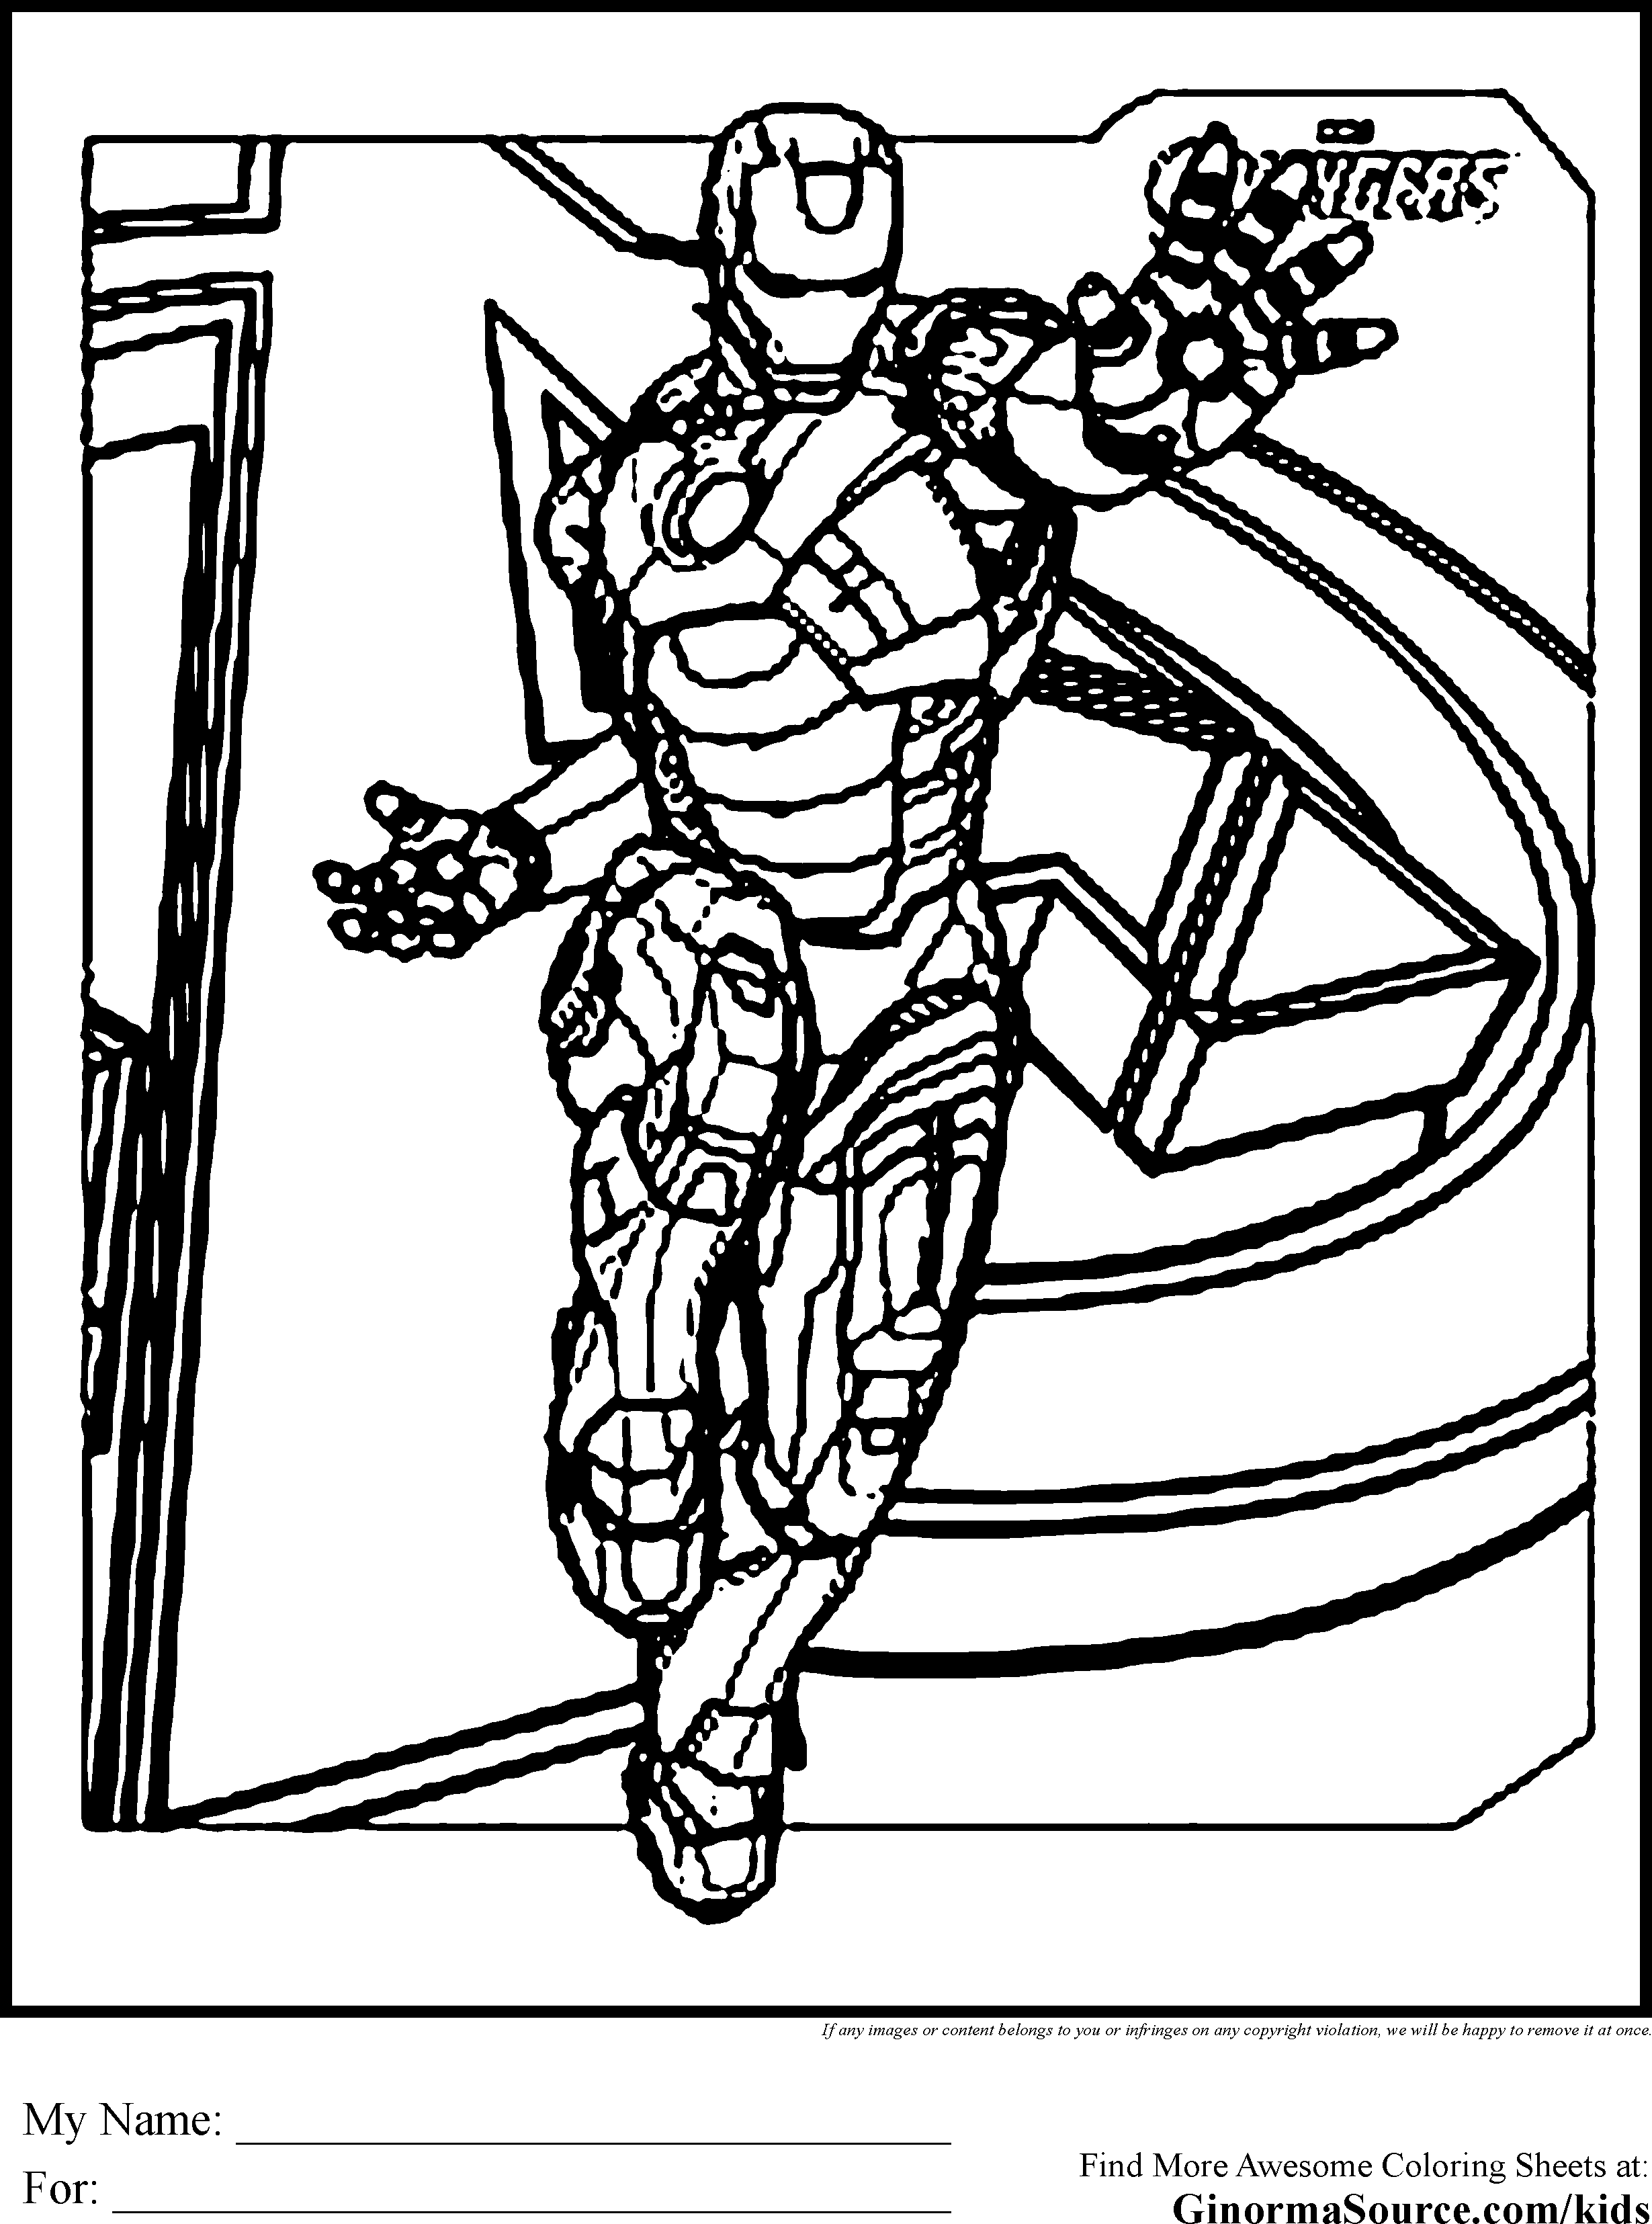 avengers coloring pages iron man is tony stark a billionaire who was injured and because of all his funds was able to use his engineering skills